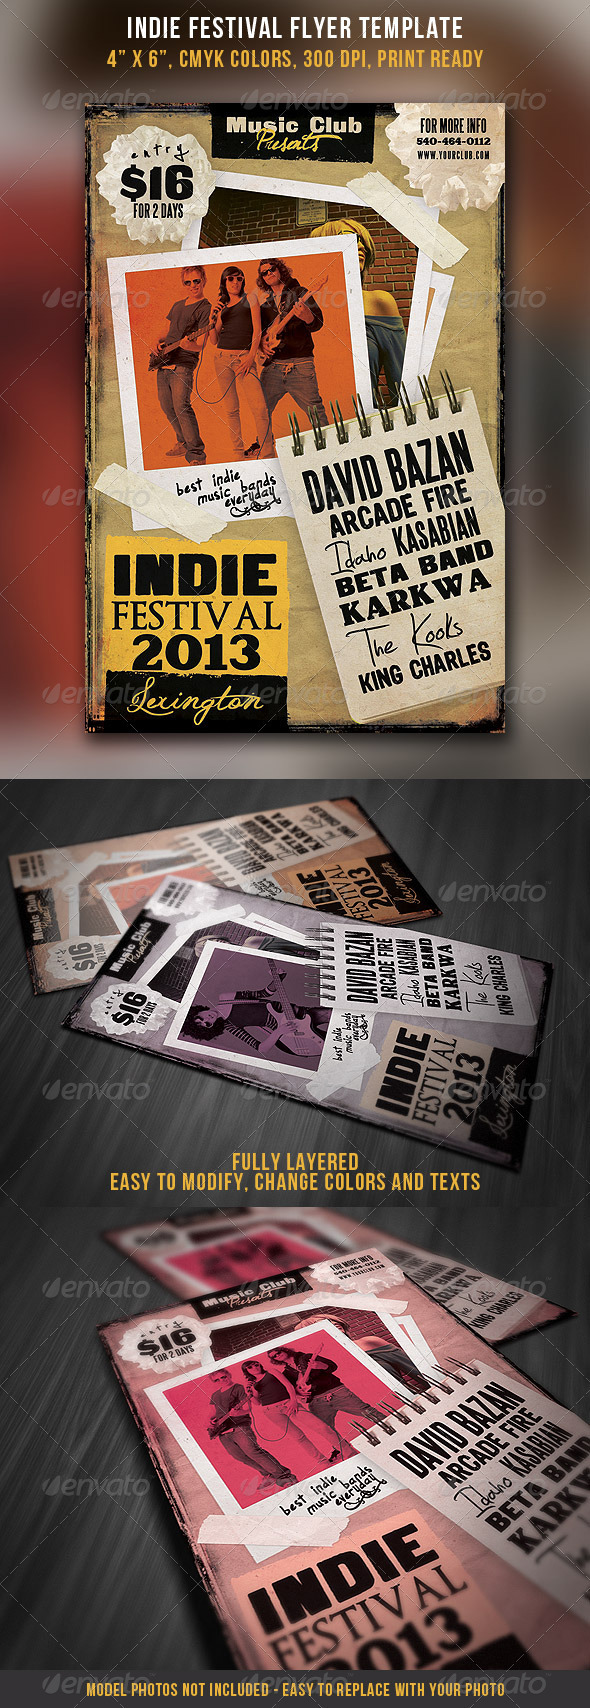 Indie Festival Flyer Template - Concerts Events